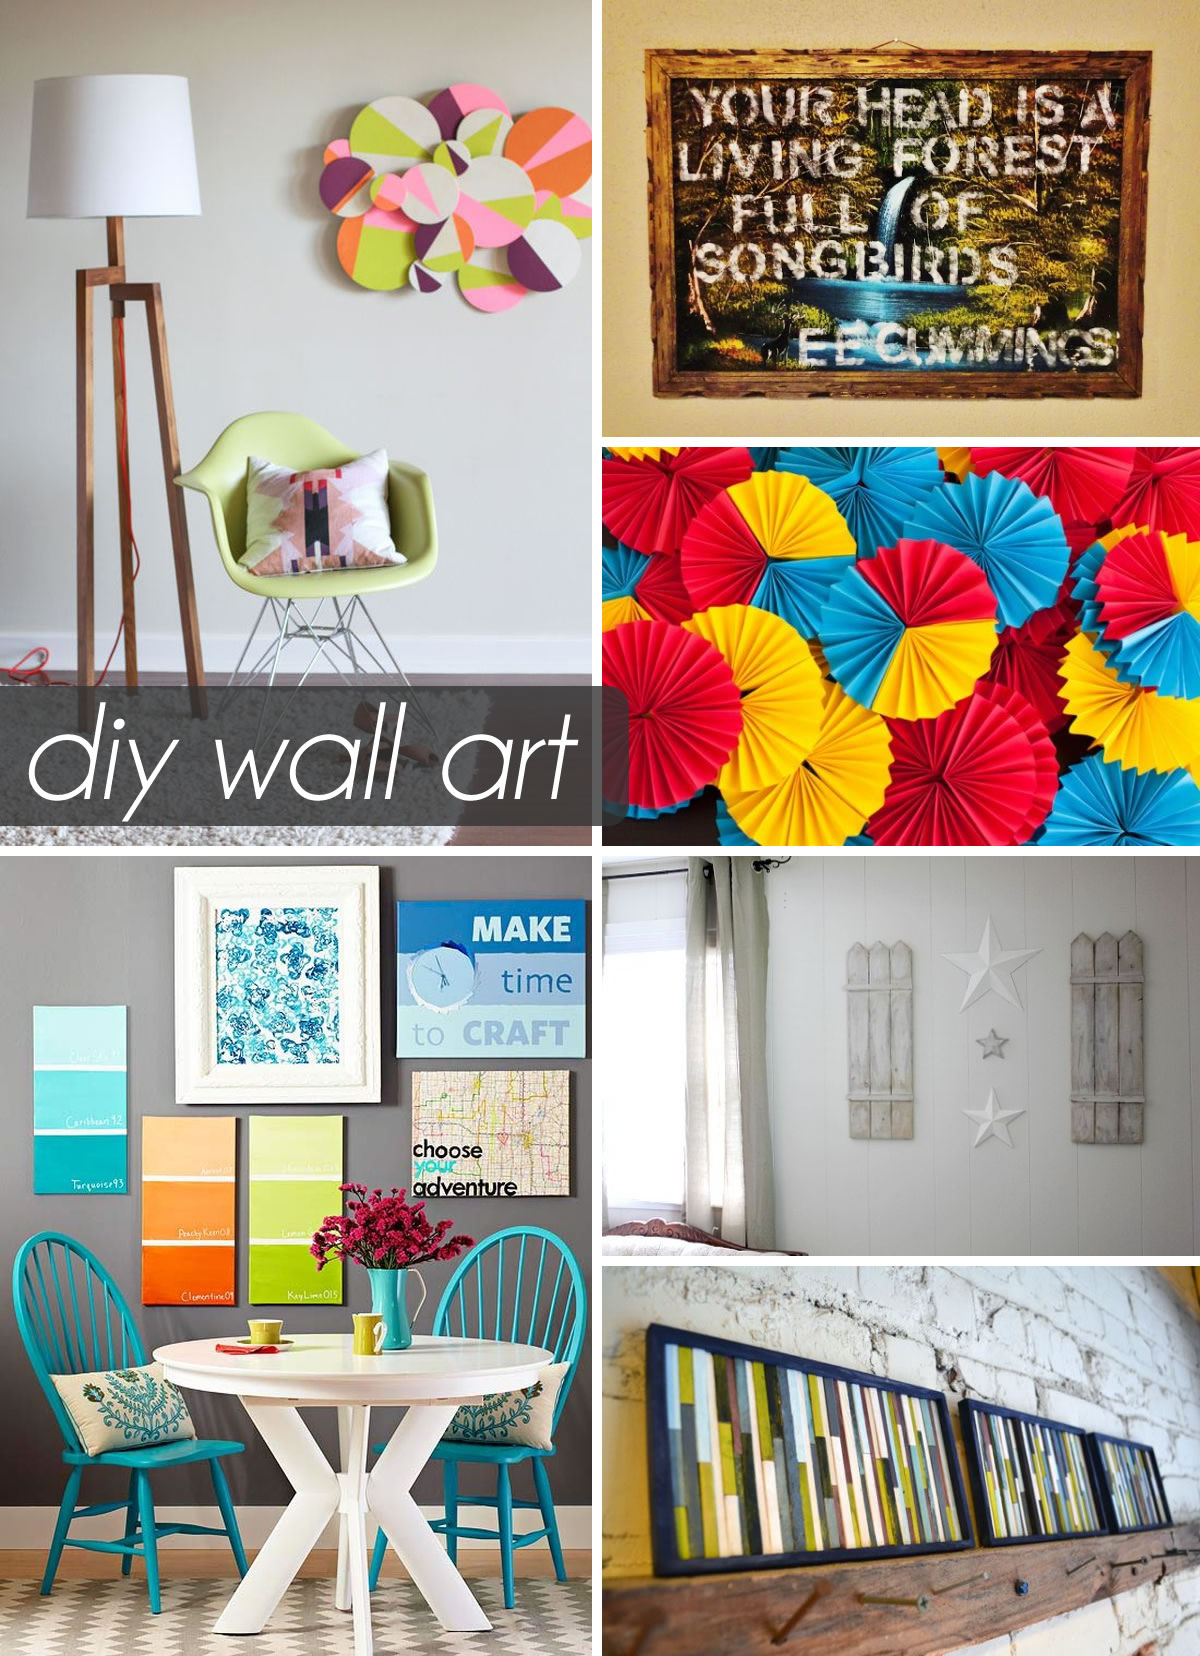 50 beautiful diy wall art ideas for your home for Diy wall decor projects